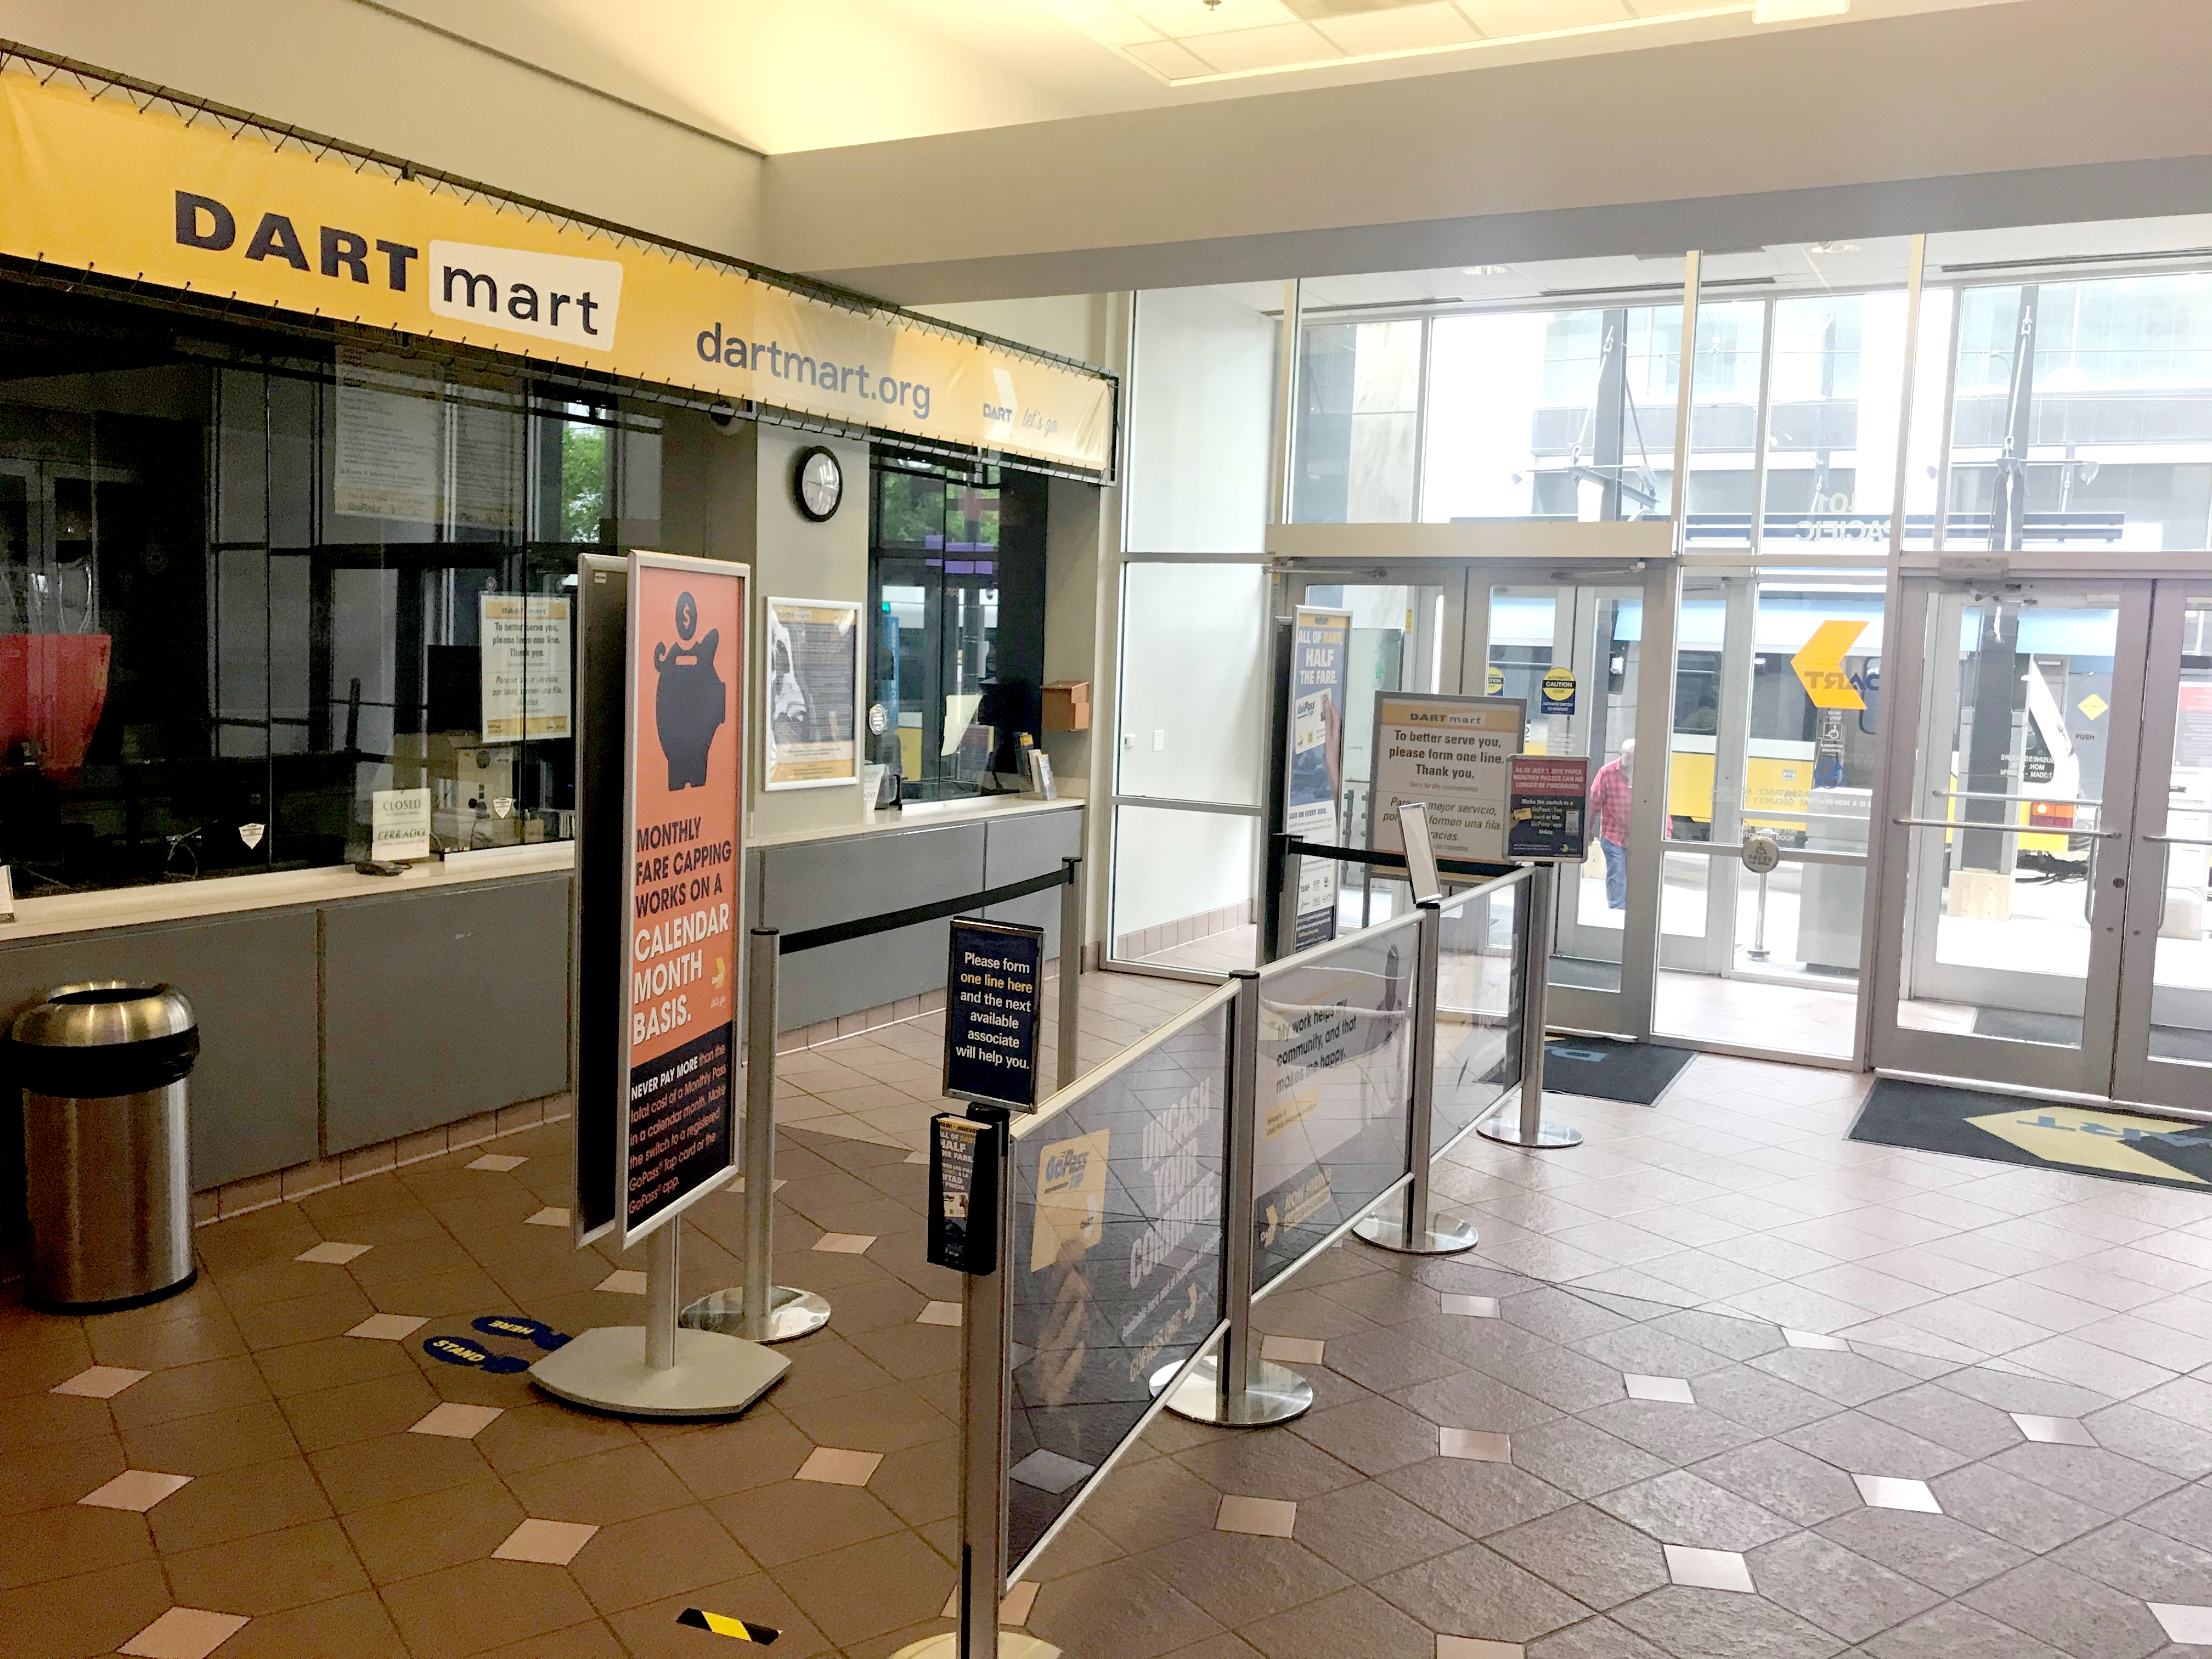 As of March 27, DARTmart's physical location is temporarily closed as a precaution against the spread of the coronavirus.